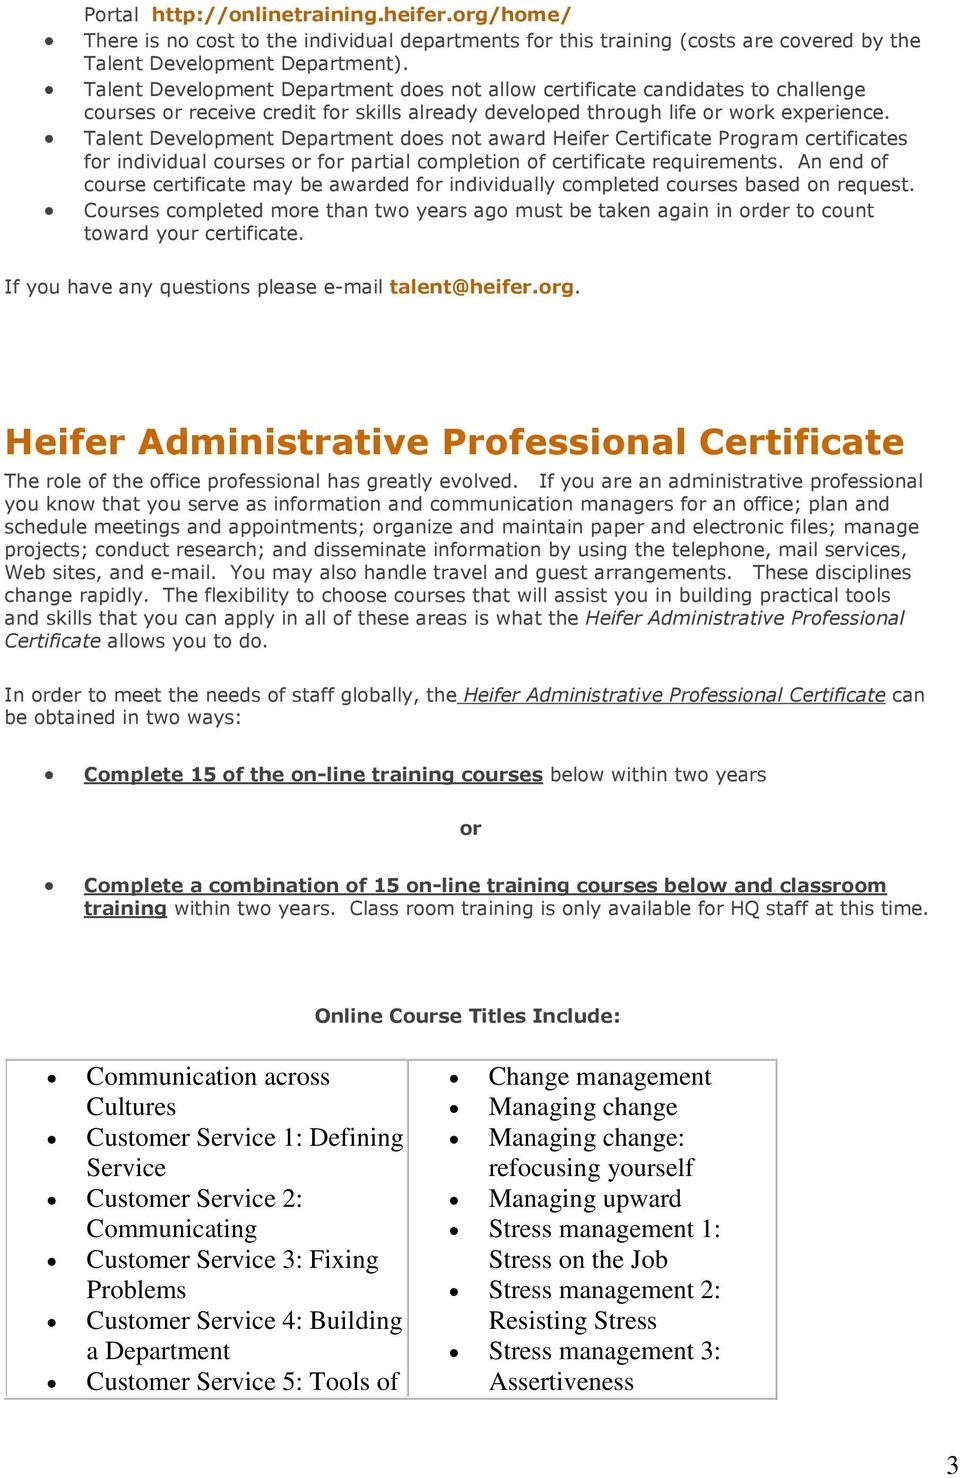 Talent Development Department does not award Heifer Certificate Program certificates for individual courses or for partial completion of certificate requirements.